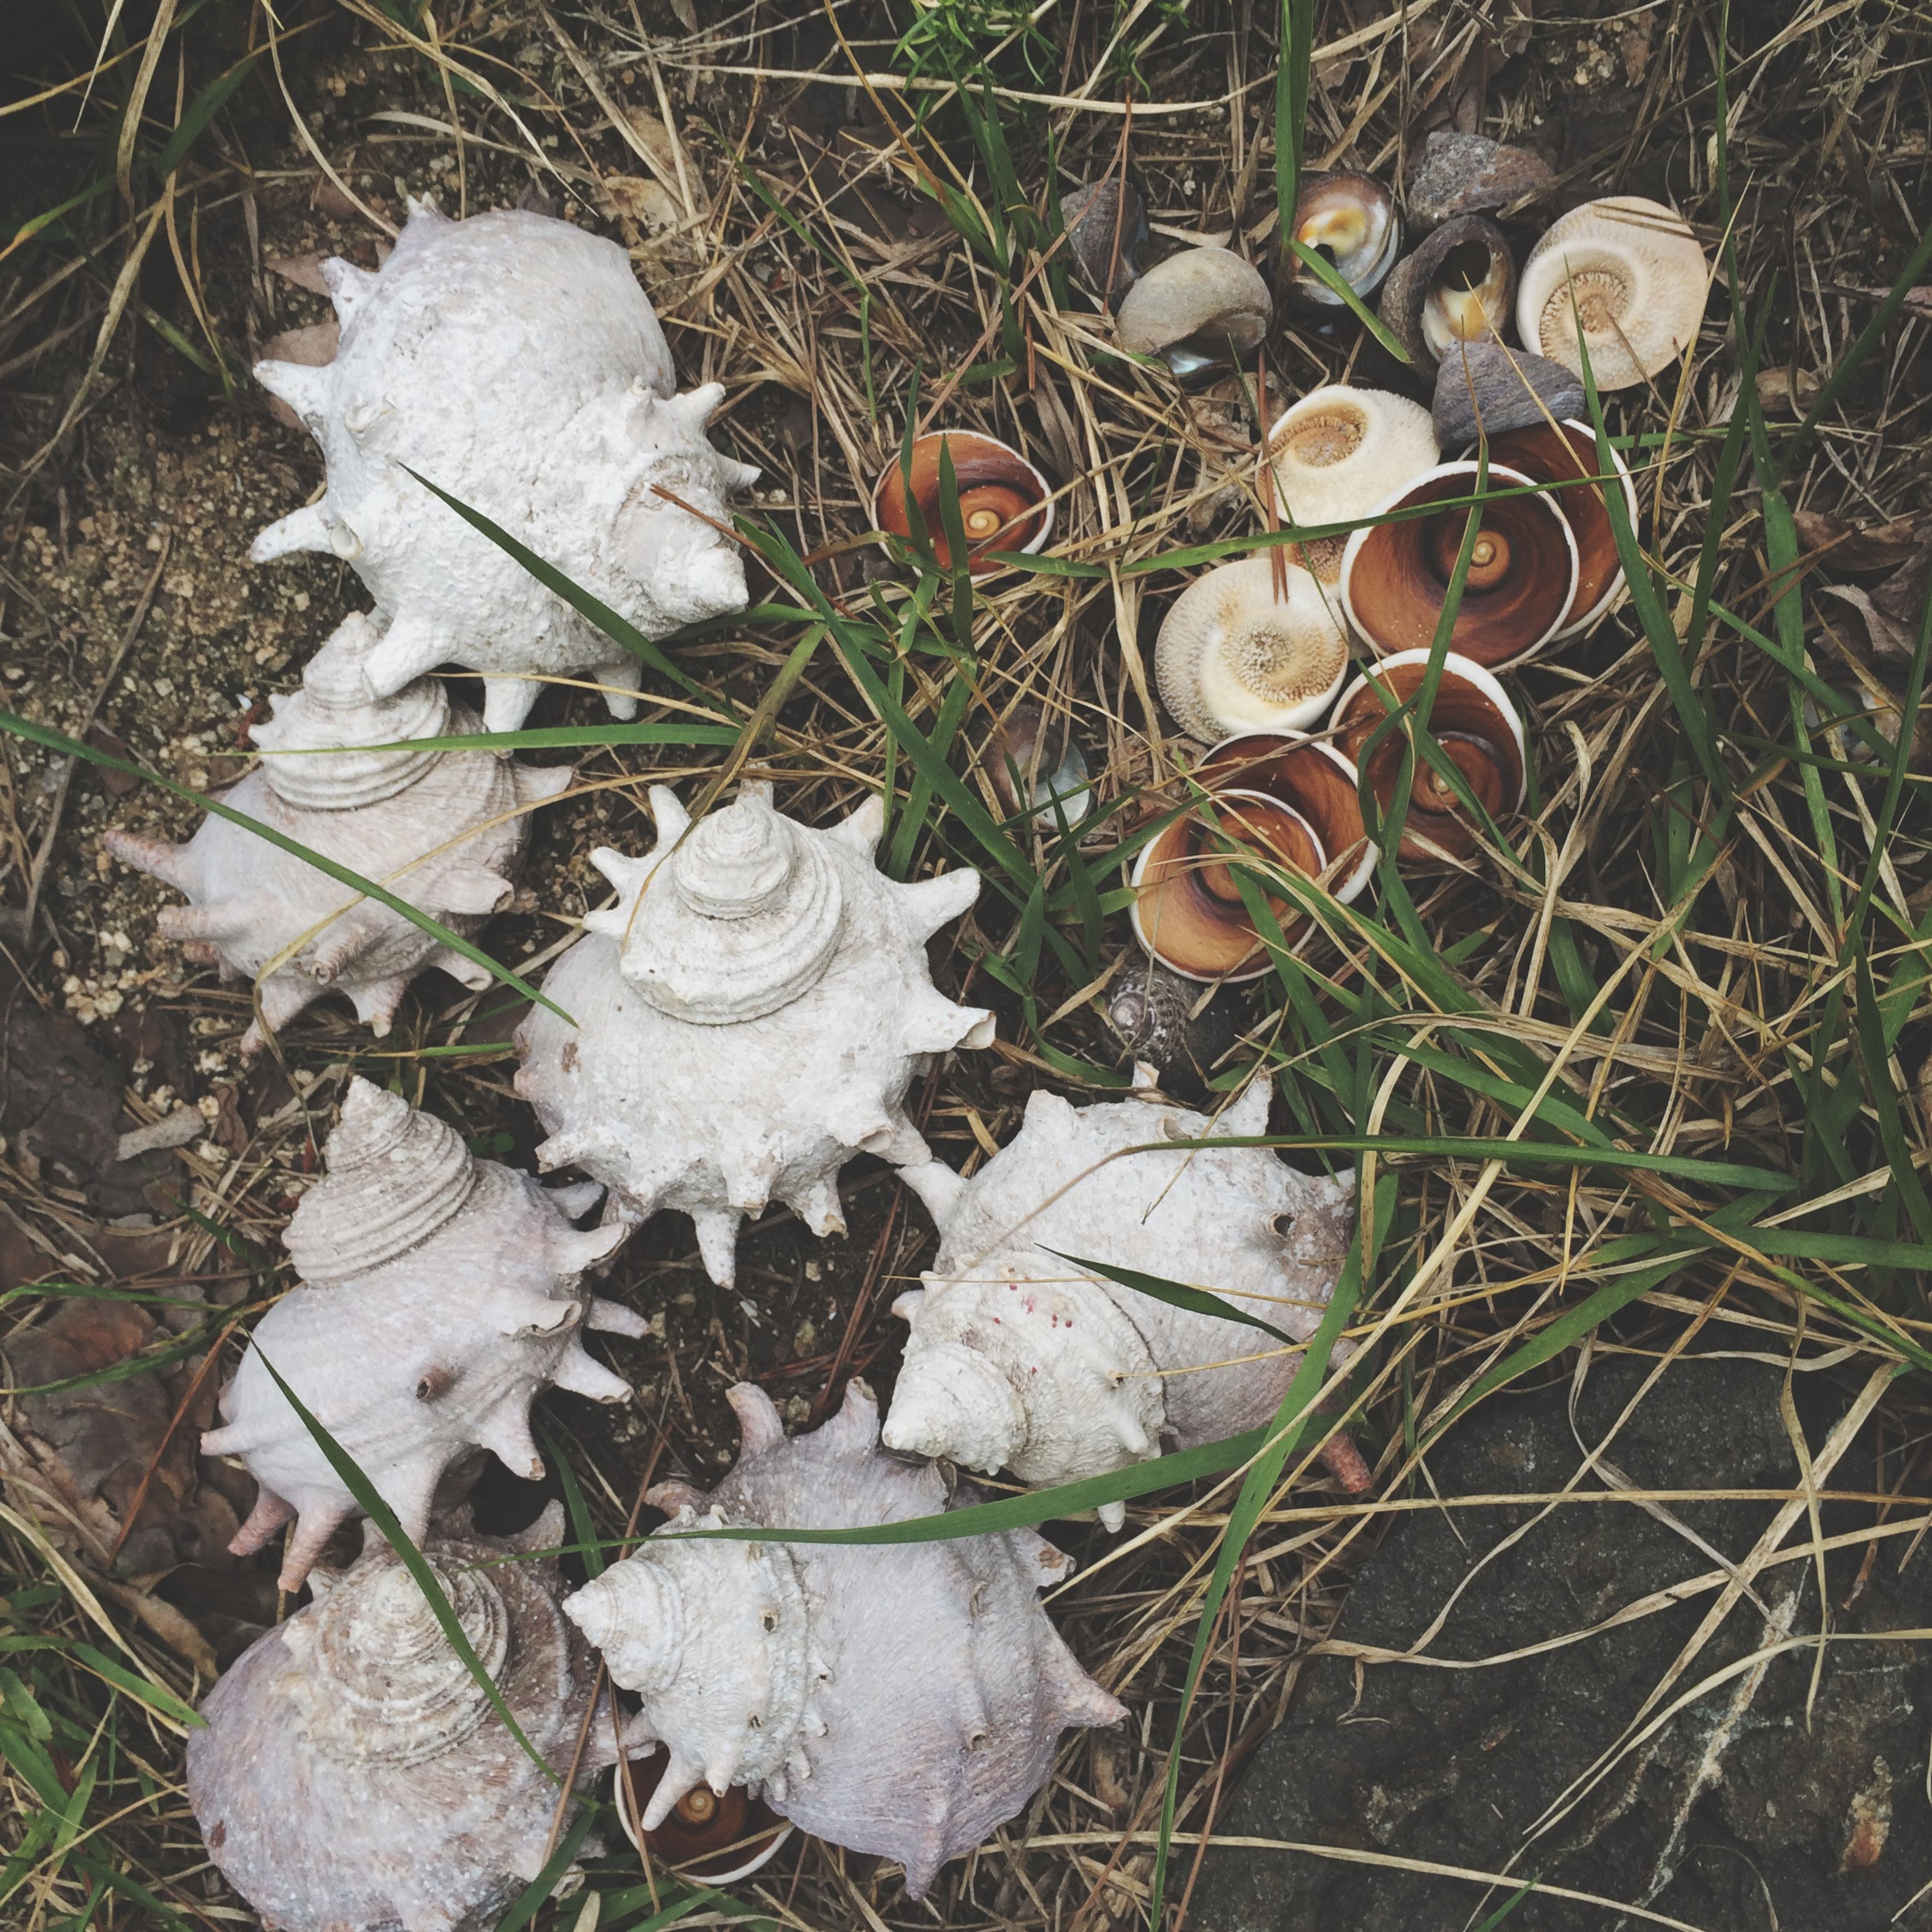 grass, high angle view, mushroom, fungus, field, growth, close-up, dry, leaf, nature, fragility, ground, plant, toadstool, white color, day, abandoned, dirt, outdoors, no people